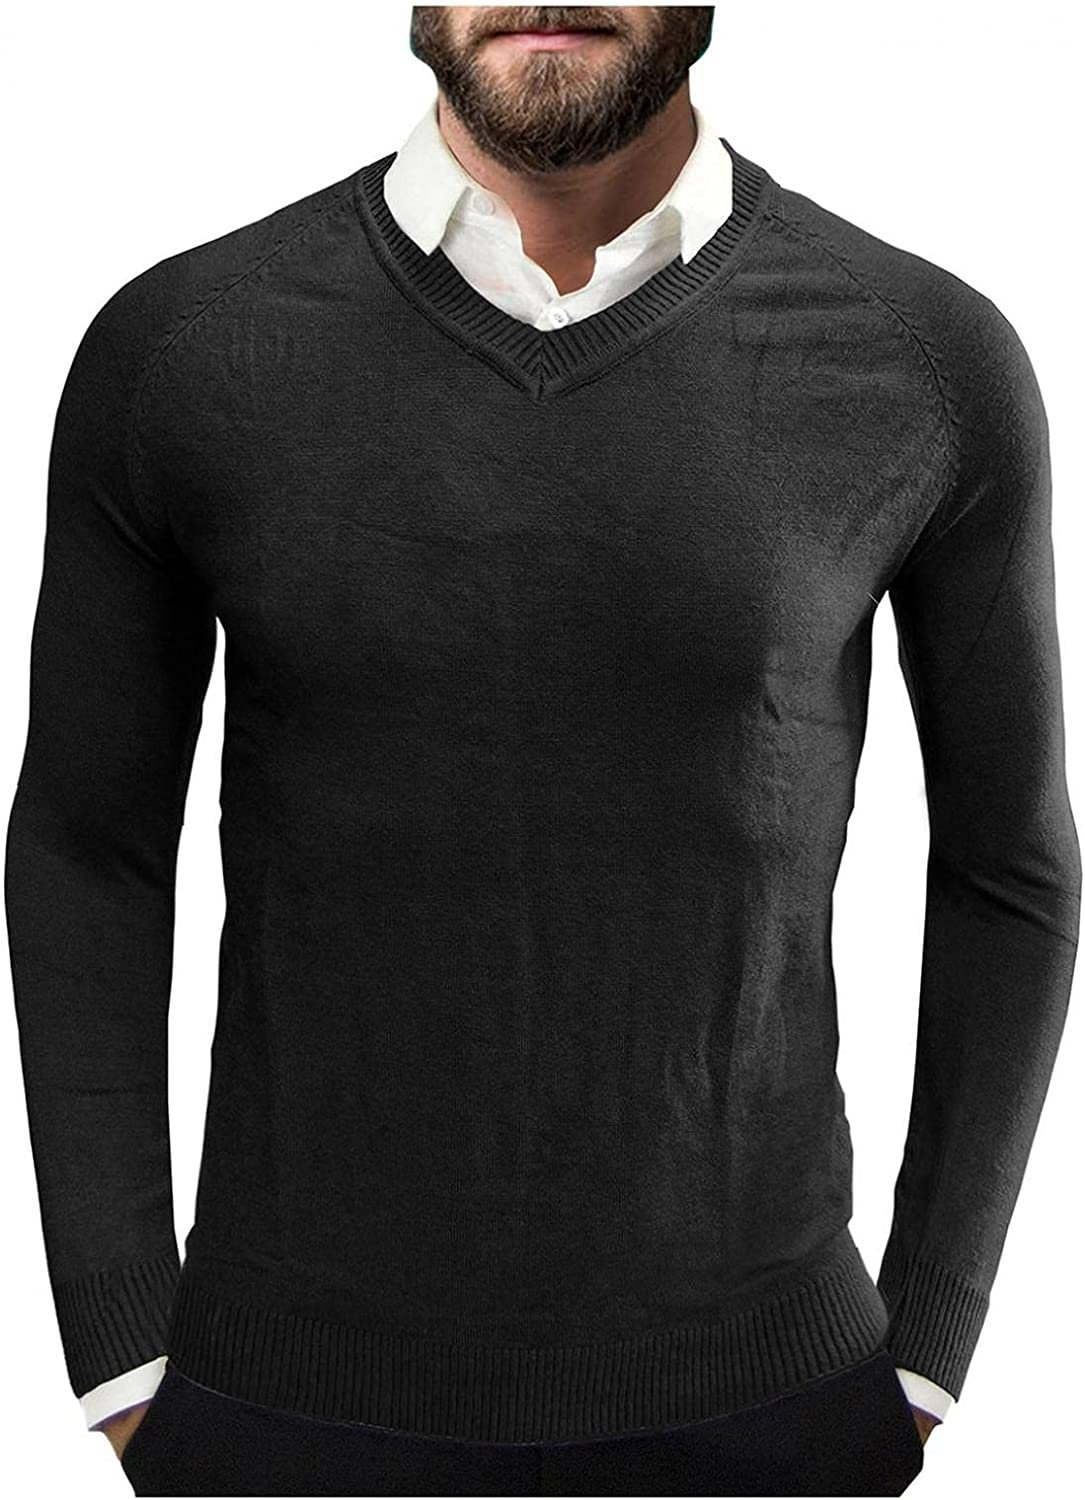 WUAI-Men Casual Slim Fit Pullover Sweaters Knitted Tops V-Neck Basic Designed Soft Fitted Thermal Fall Winter Warm